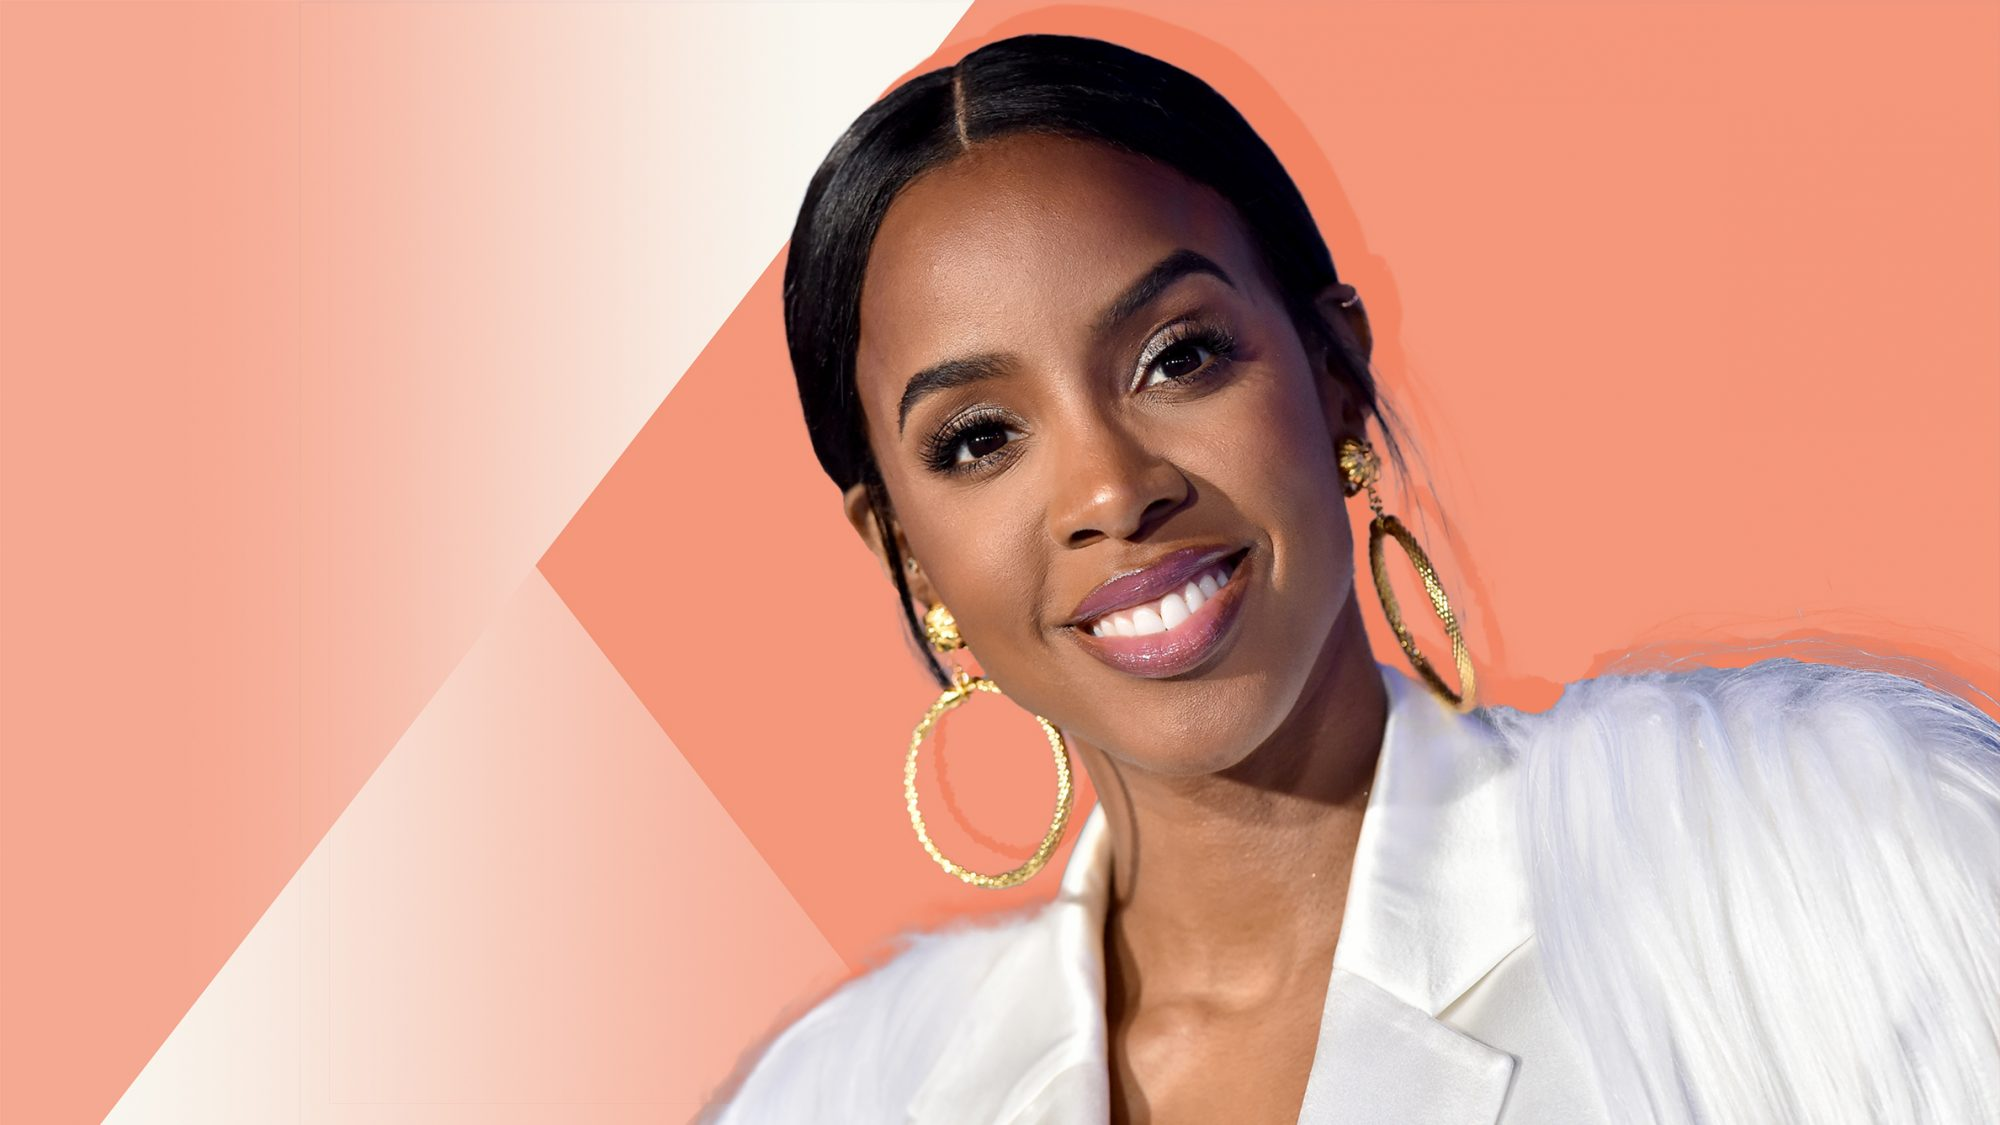 """HOLLYWOOD, CALIFORNIA - DECEMBER 09: Kelly Rowland attends the premiere of Sony Pictures' """"Jumanji: The Next Level"""" on December 09, 2019 in Hollywood, California. (Photo by Axelle/Bauer-Griffin/FilmMagic)"""